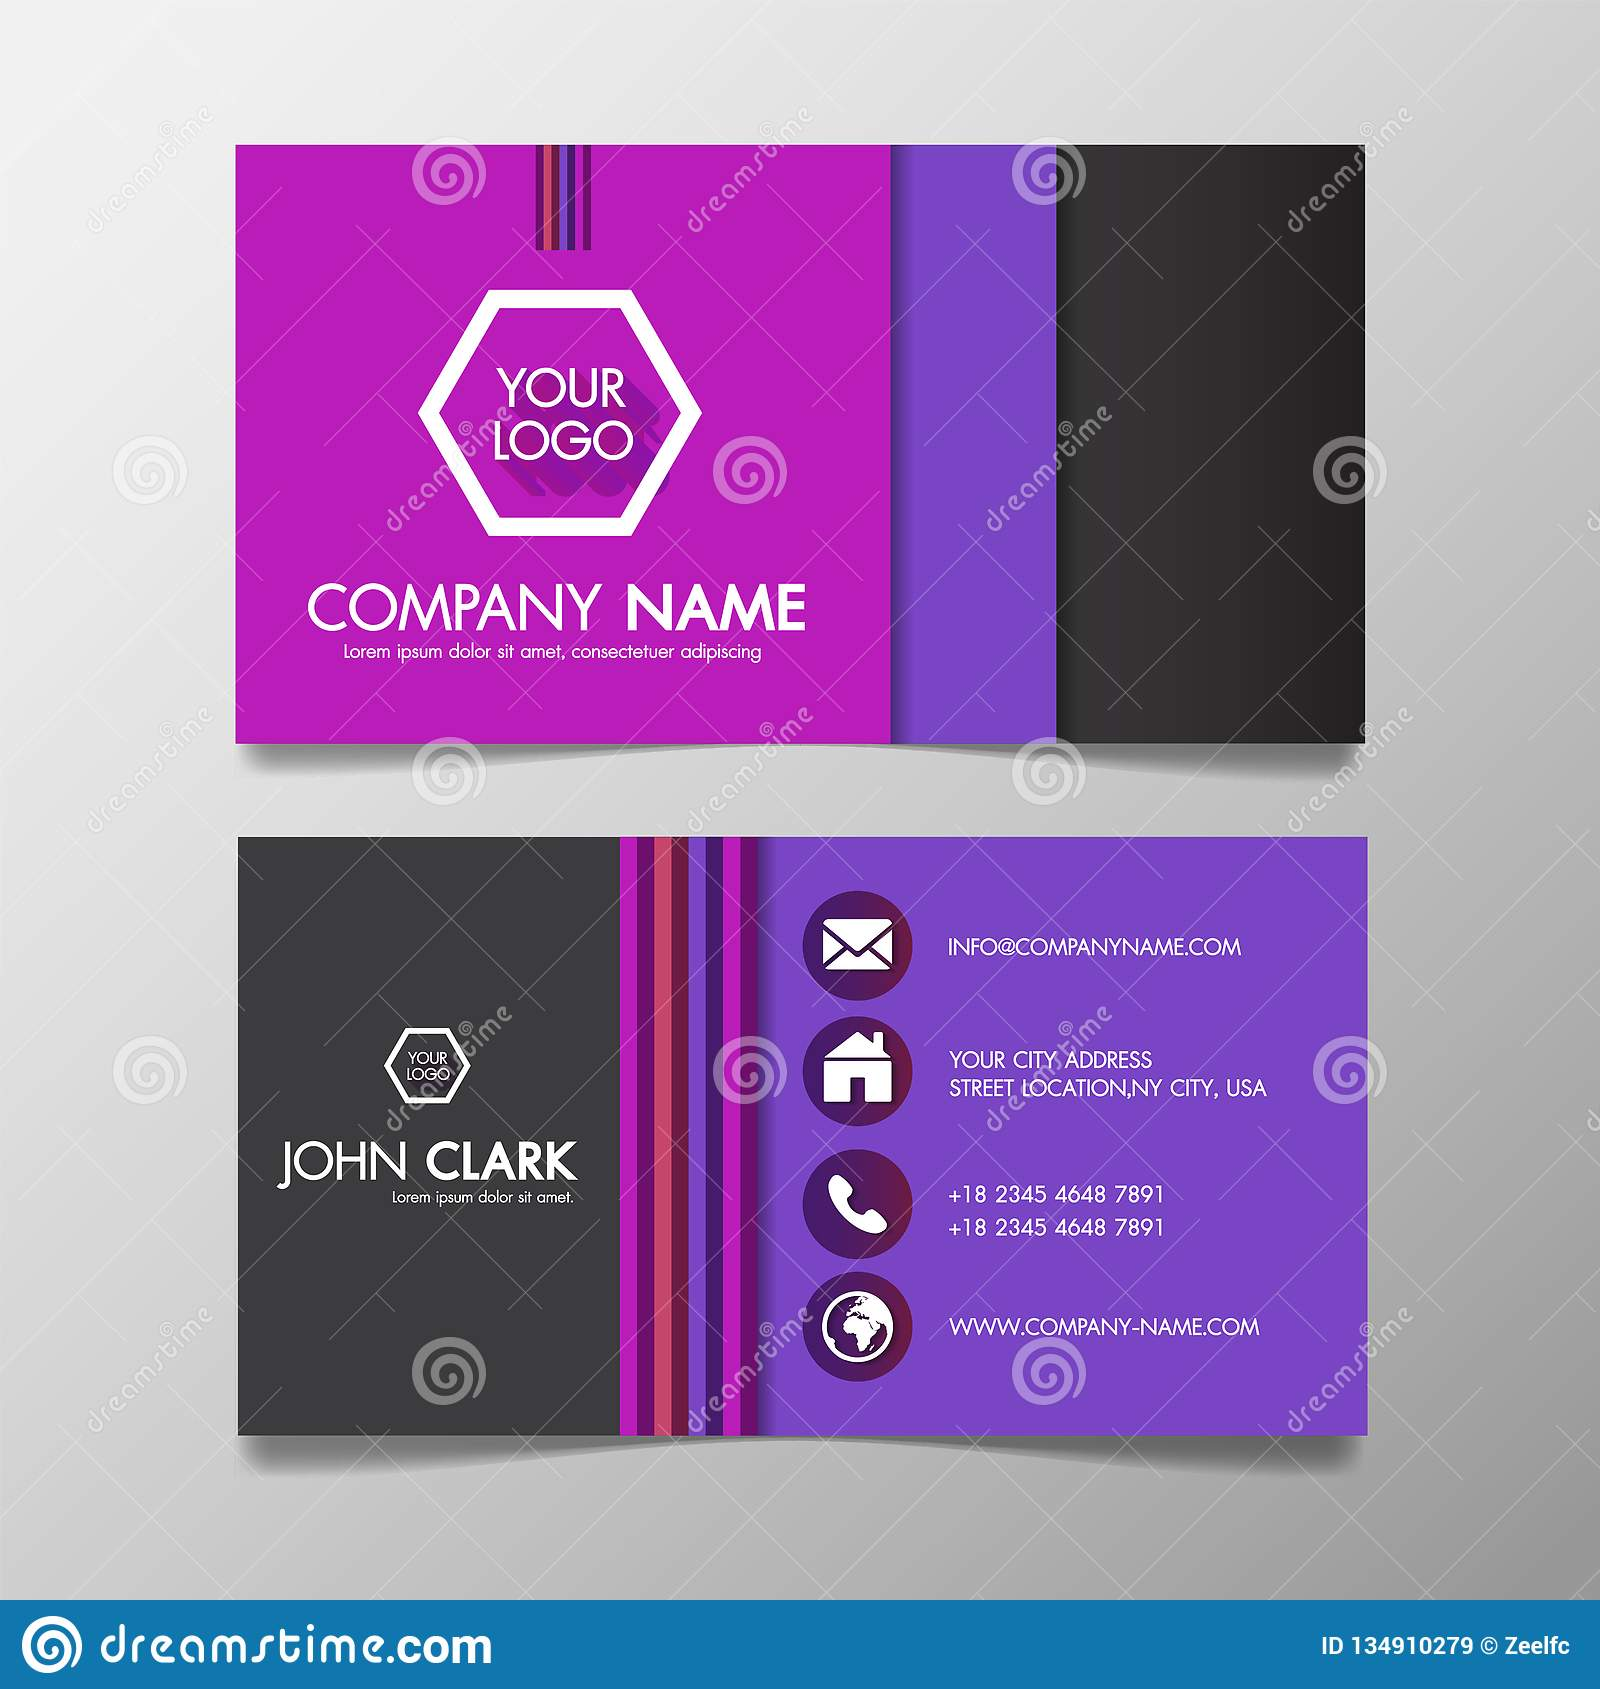 Modern Colorful Business Card Template Presentation Design With